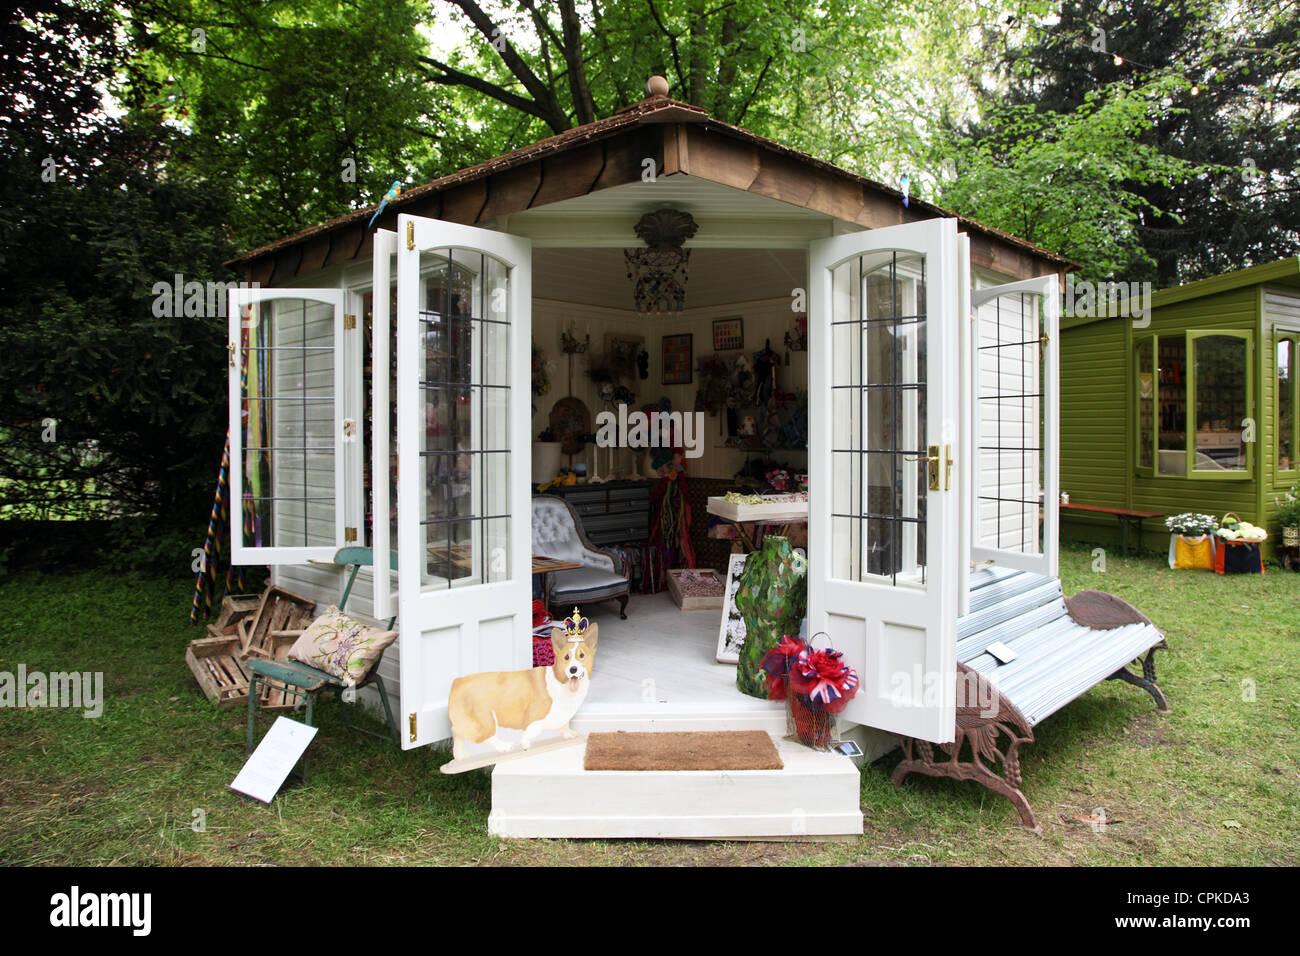 Annabel Lewis summerhouse designed for RHS Chelsea Flower Show 2012 Artisans Retreat section - Stock Image